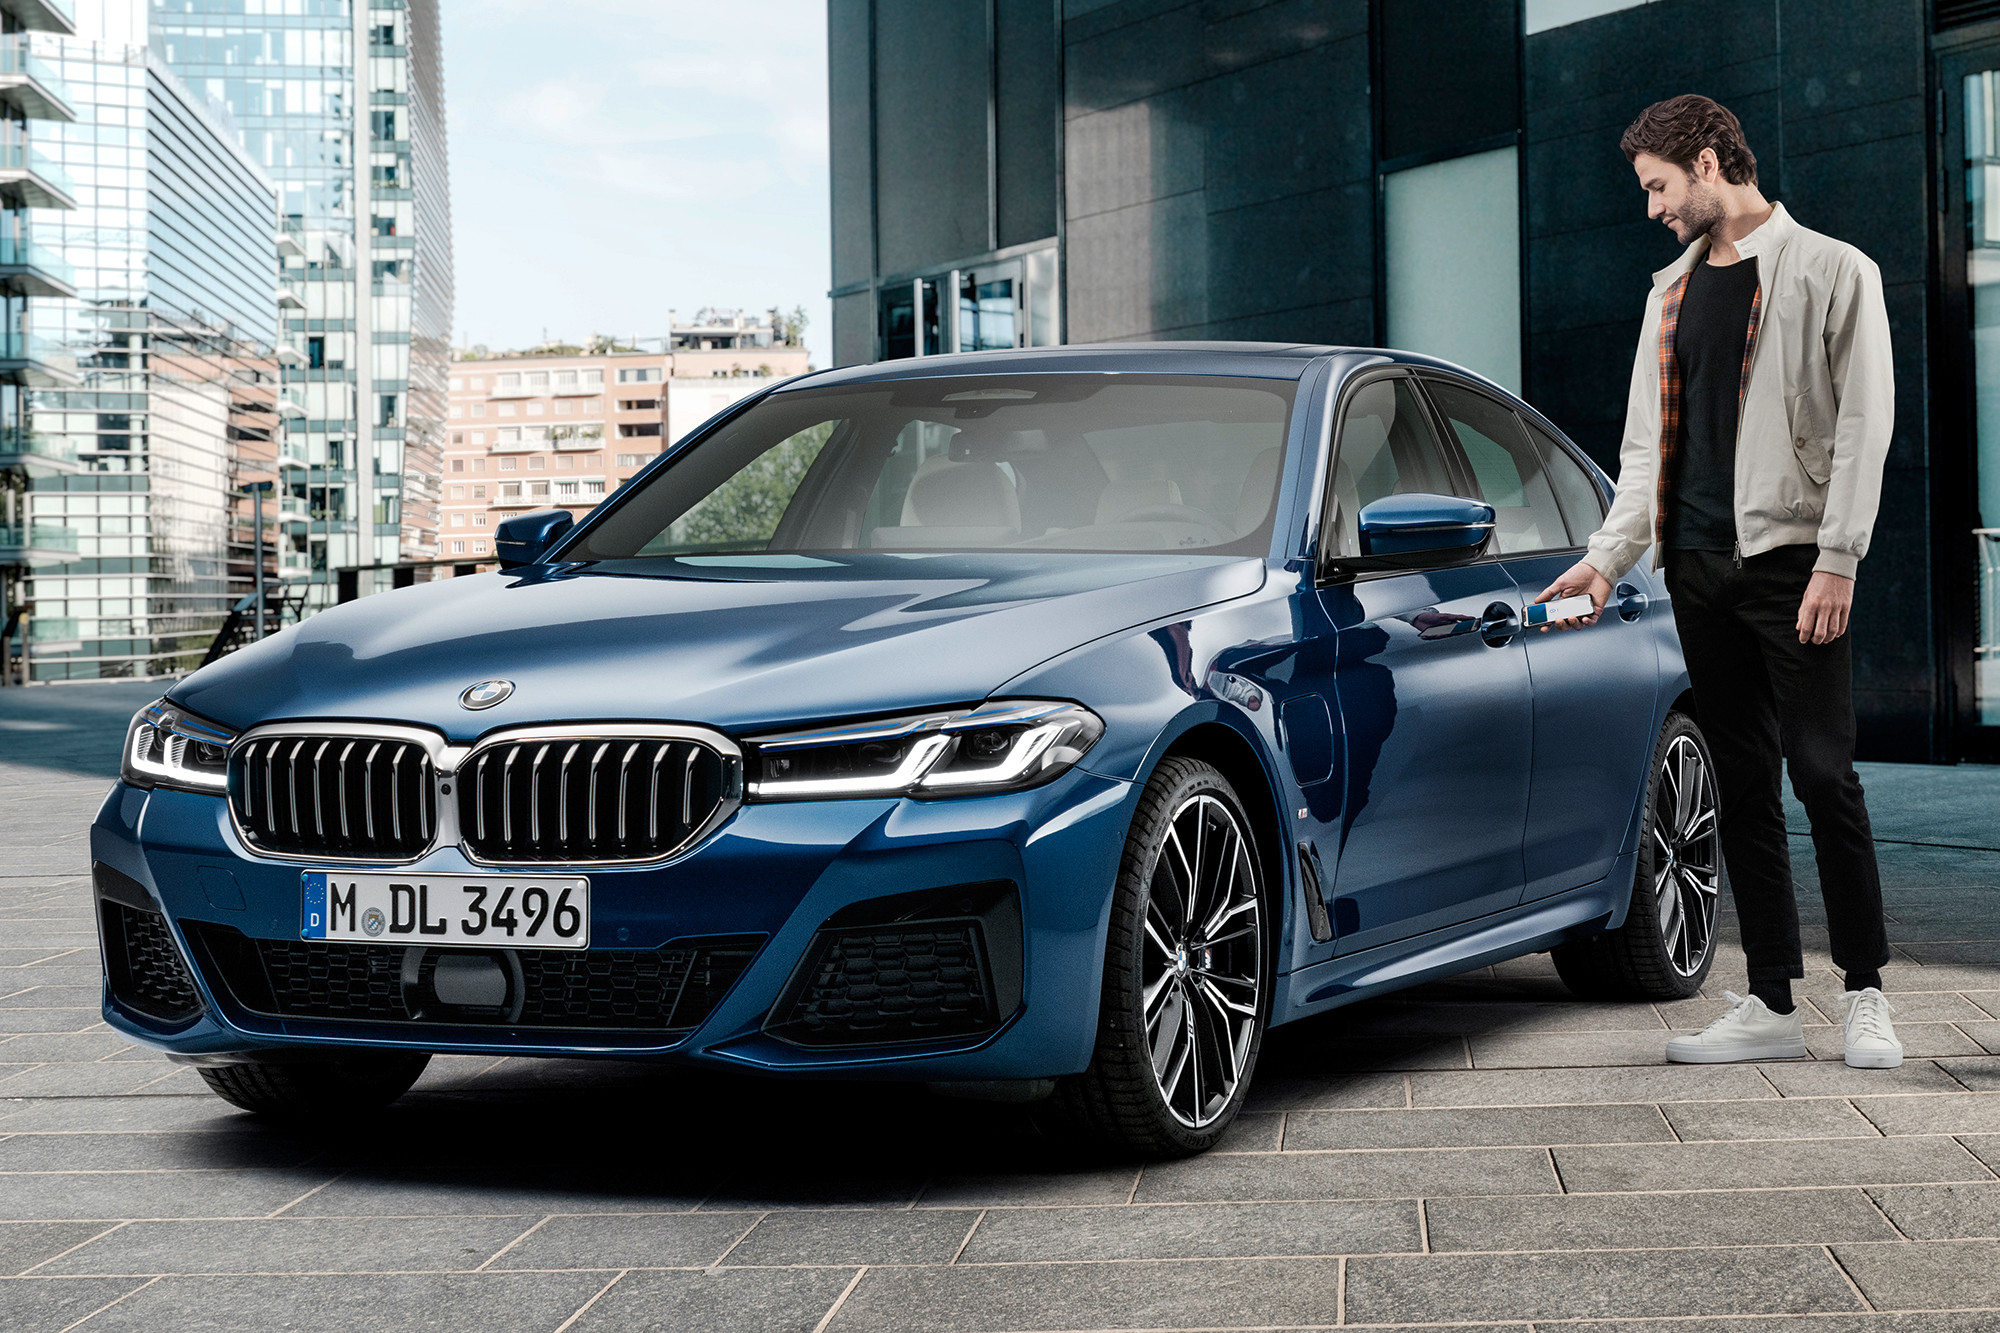 BMW First to Let You Unlock, Start Your Car With iPhone Digital Key